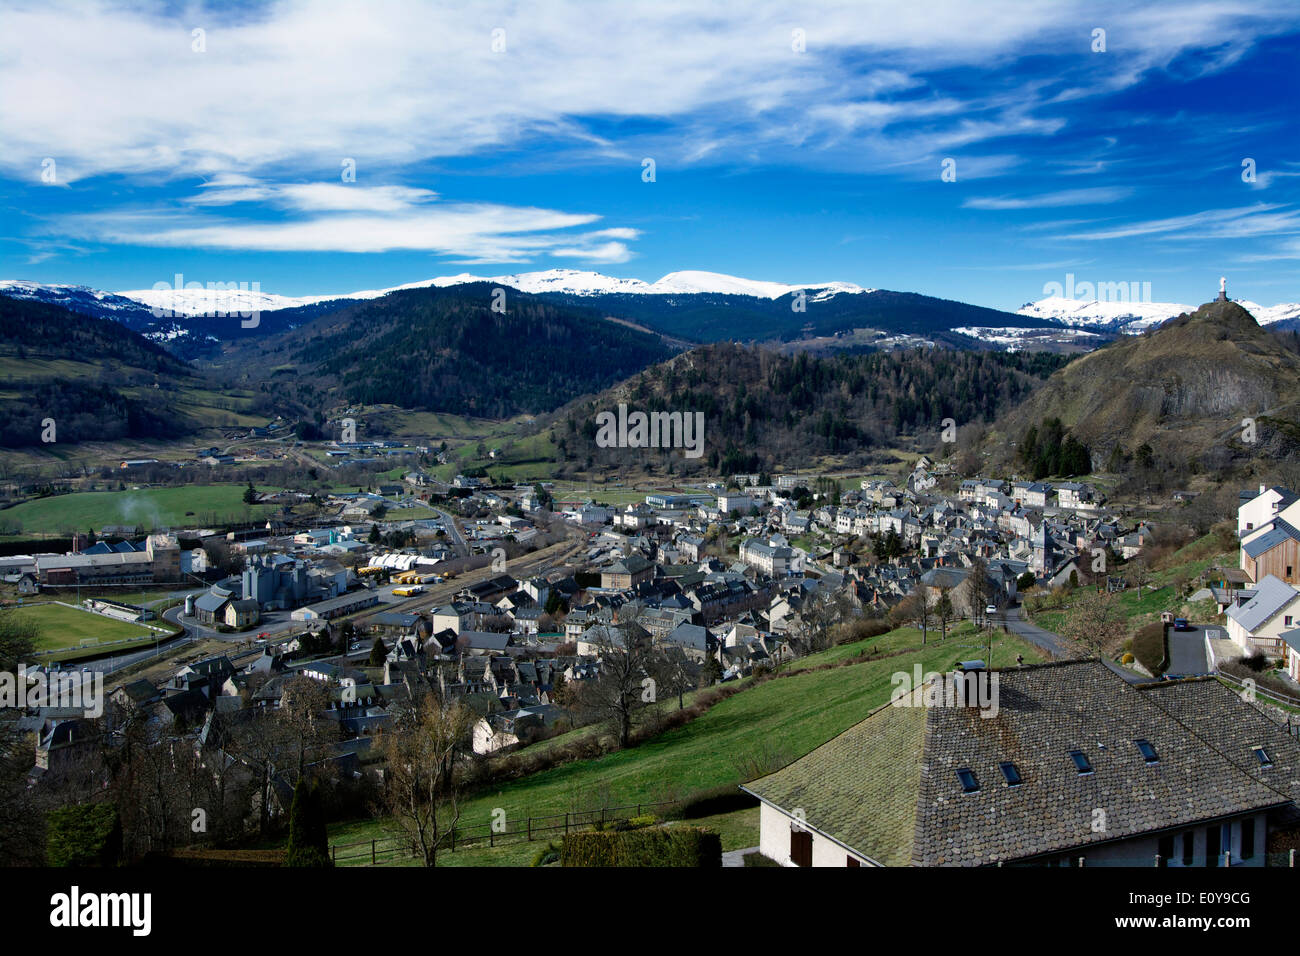 Town of Murat, Cantal, France, Europe - Stock Image